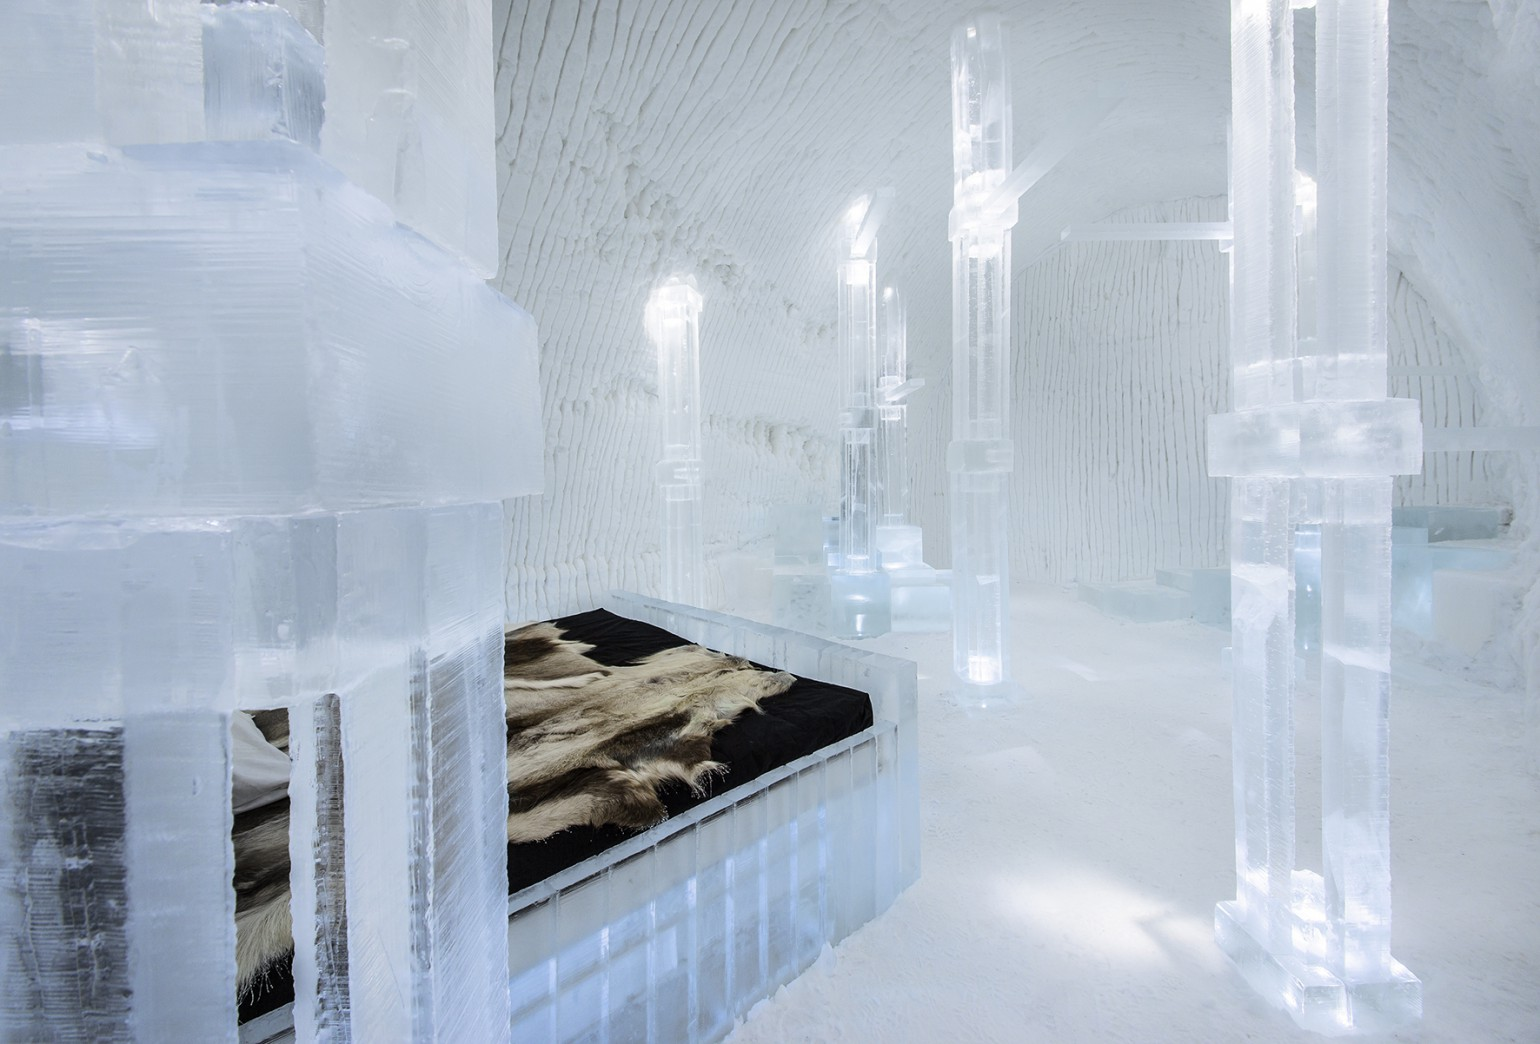 solid_flow_1_photo_christian_stromqvist_design_icehotel